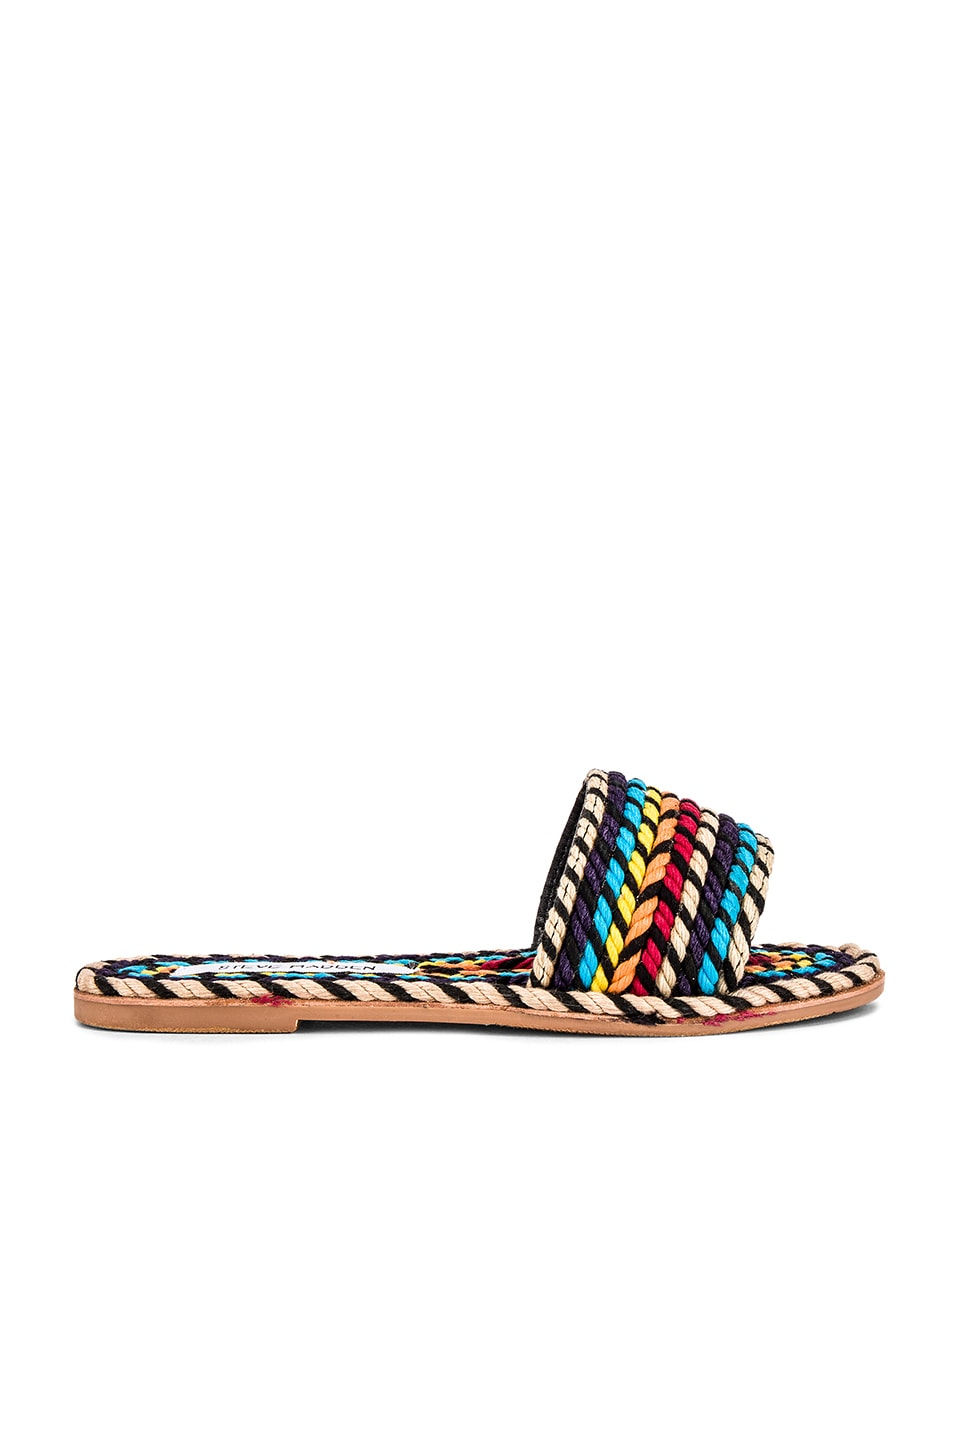 Steve Madden Roper Sandal in Bright Multi